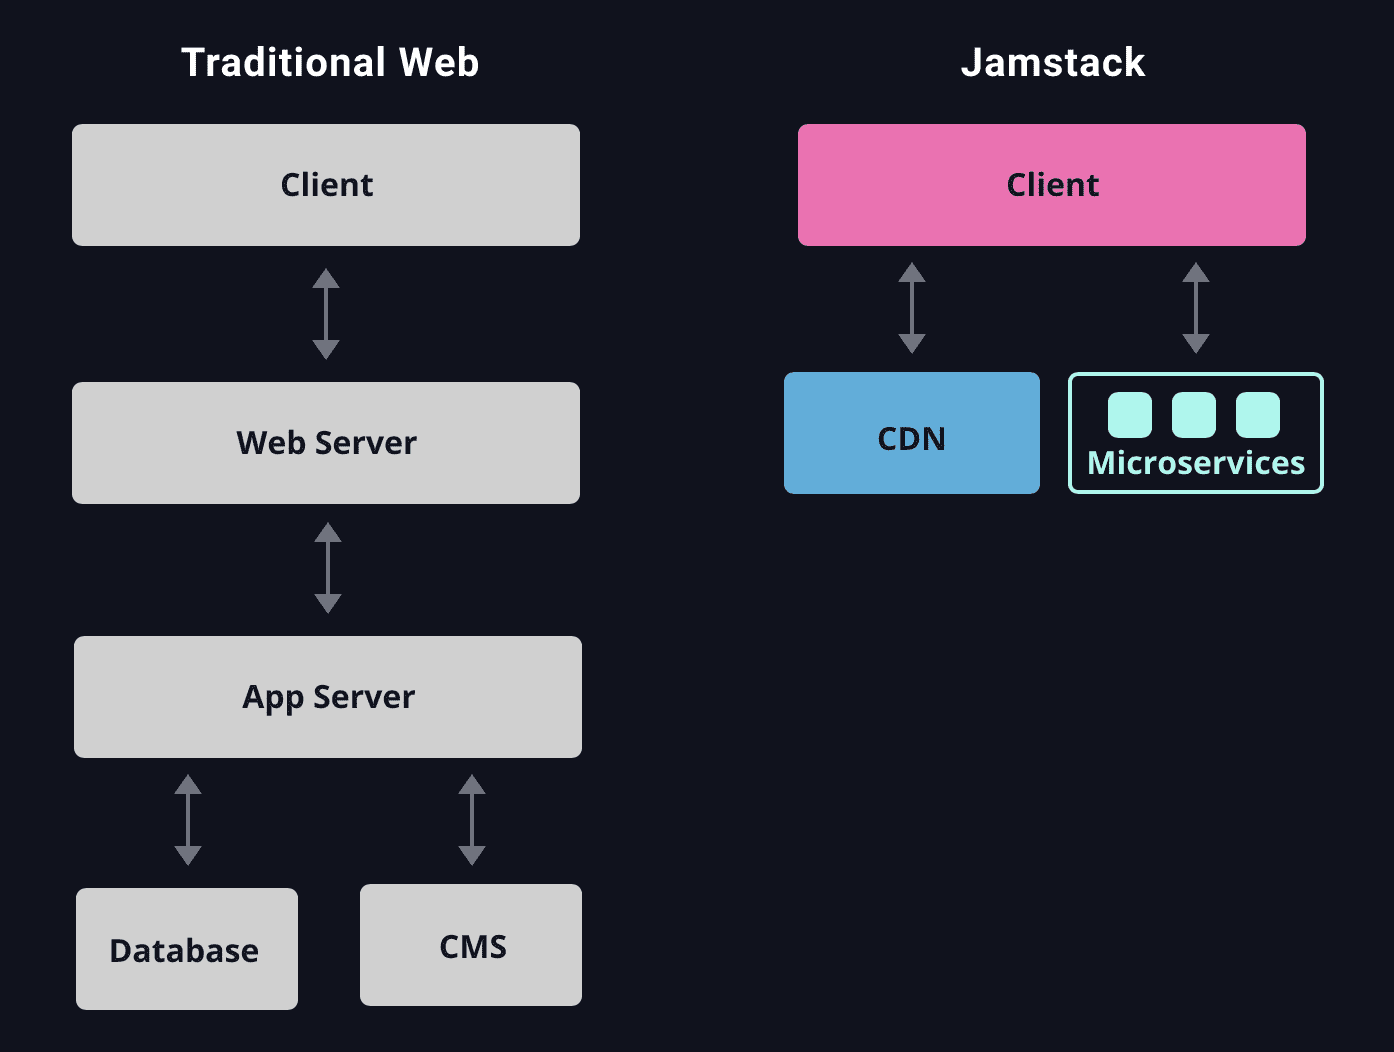 Jamstack architecture